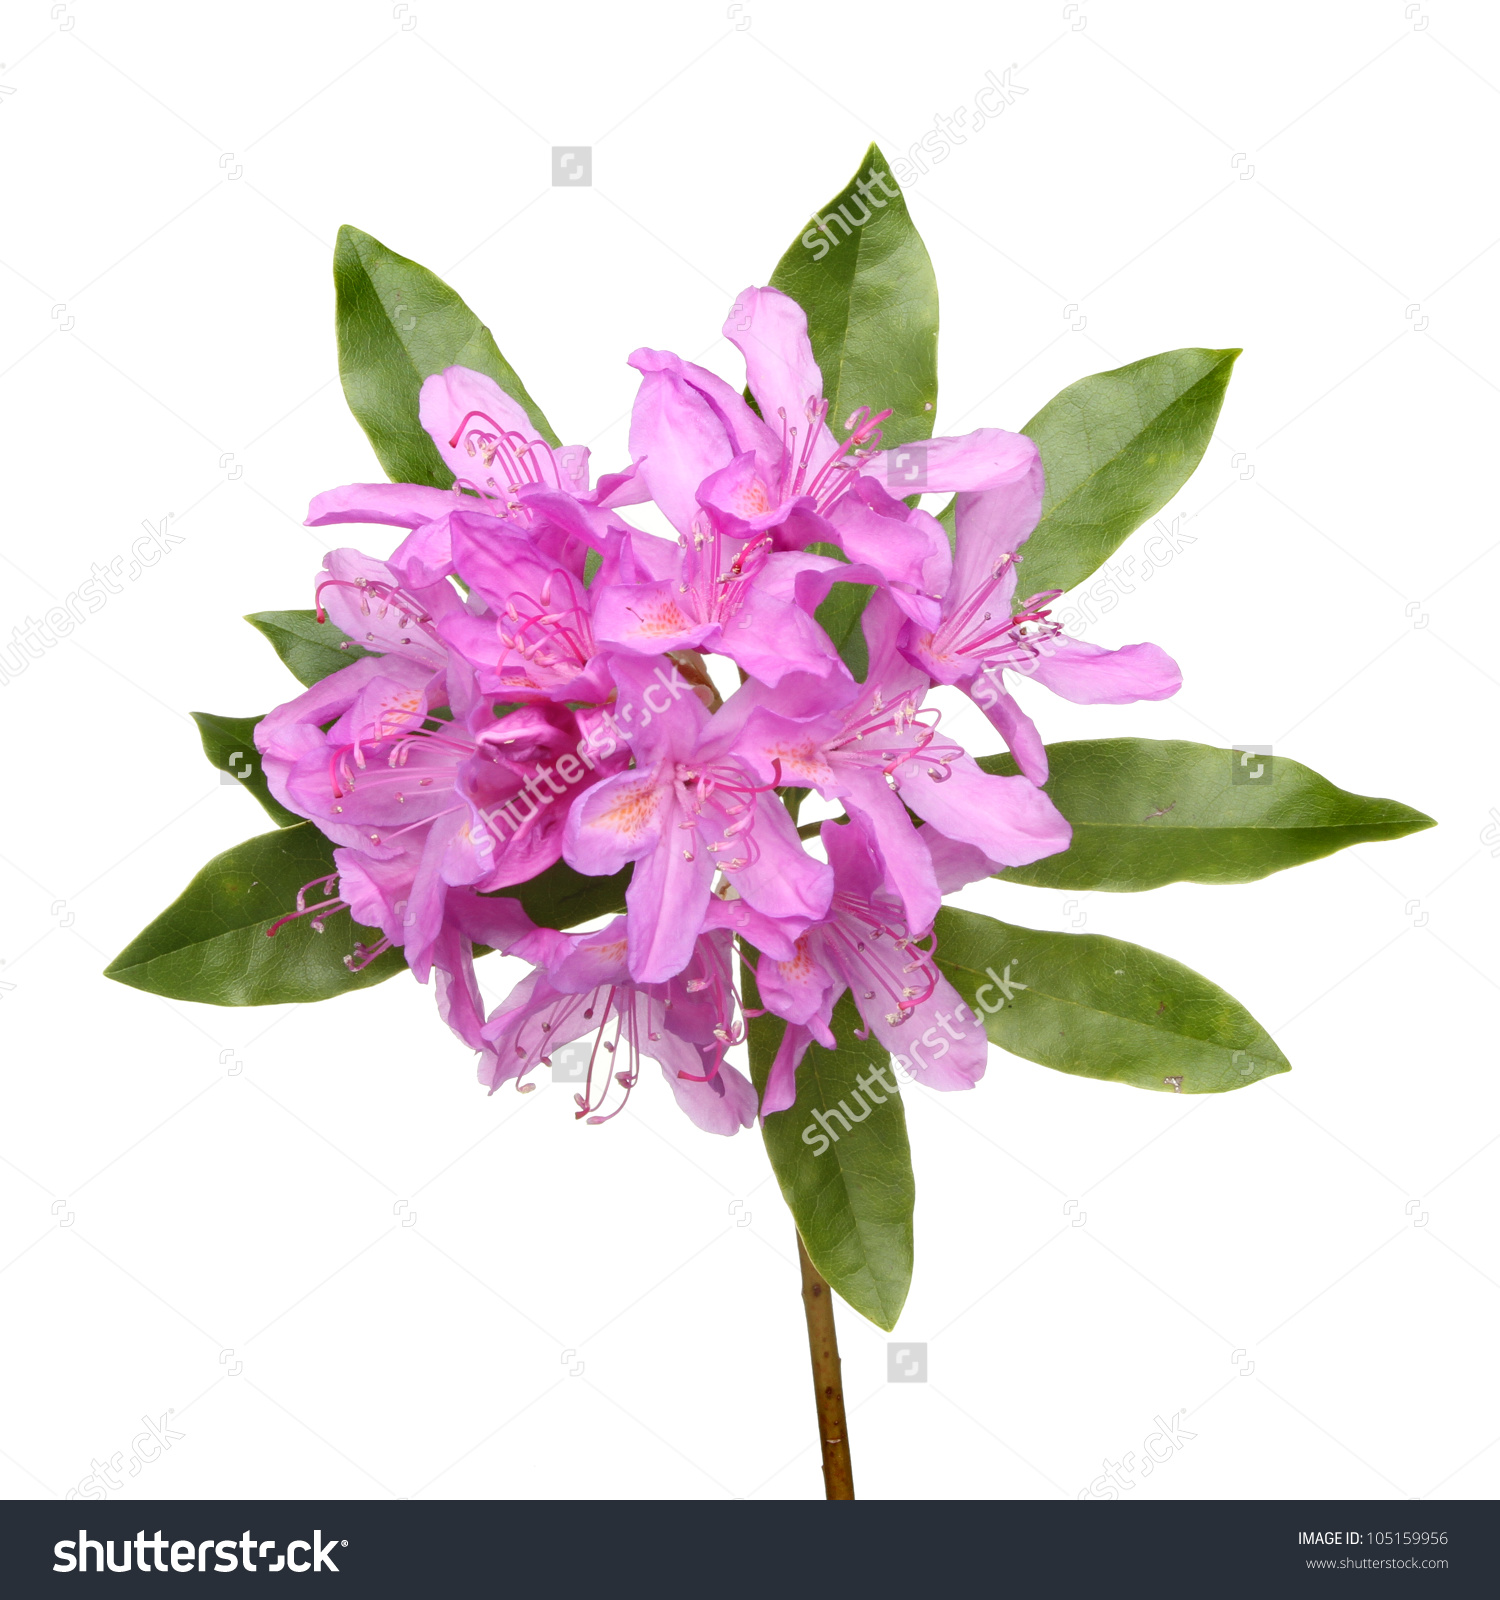 Rhododendron Ponticum Purple Flowers Leaves Isolated Stock Photo.